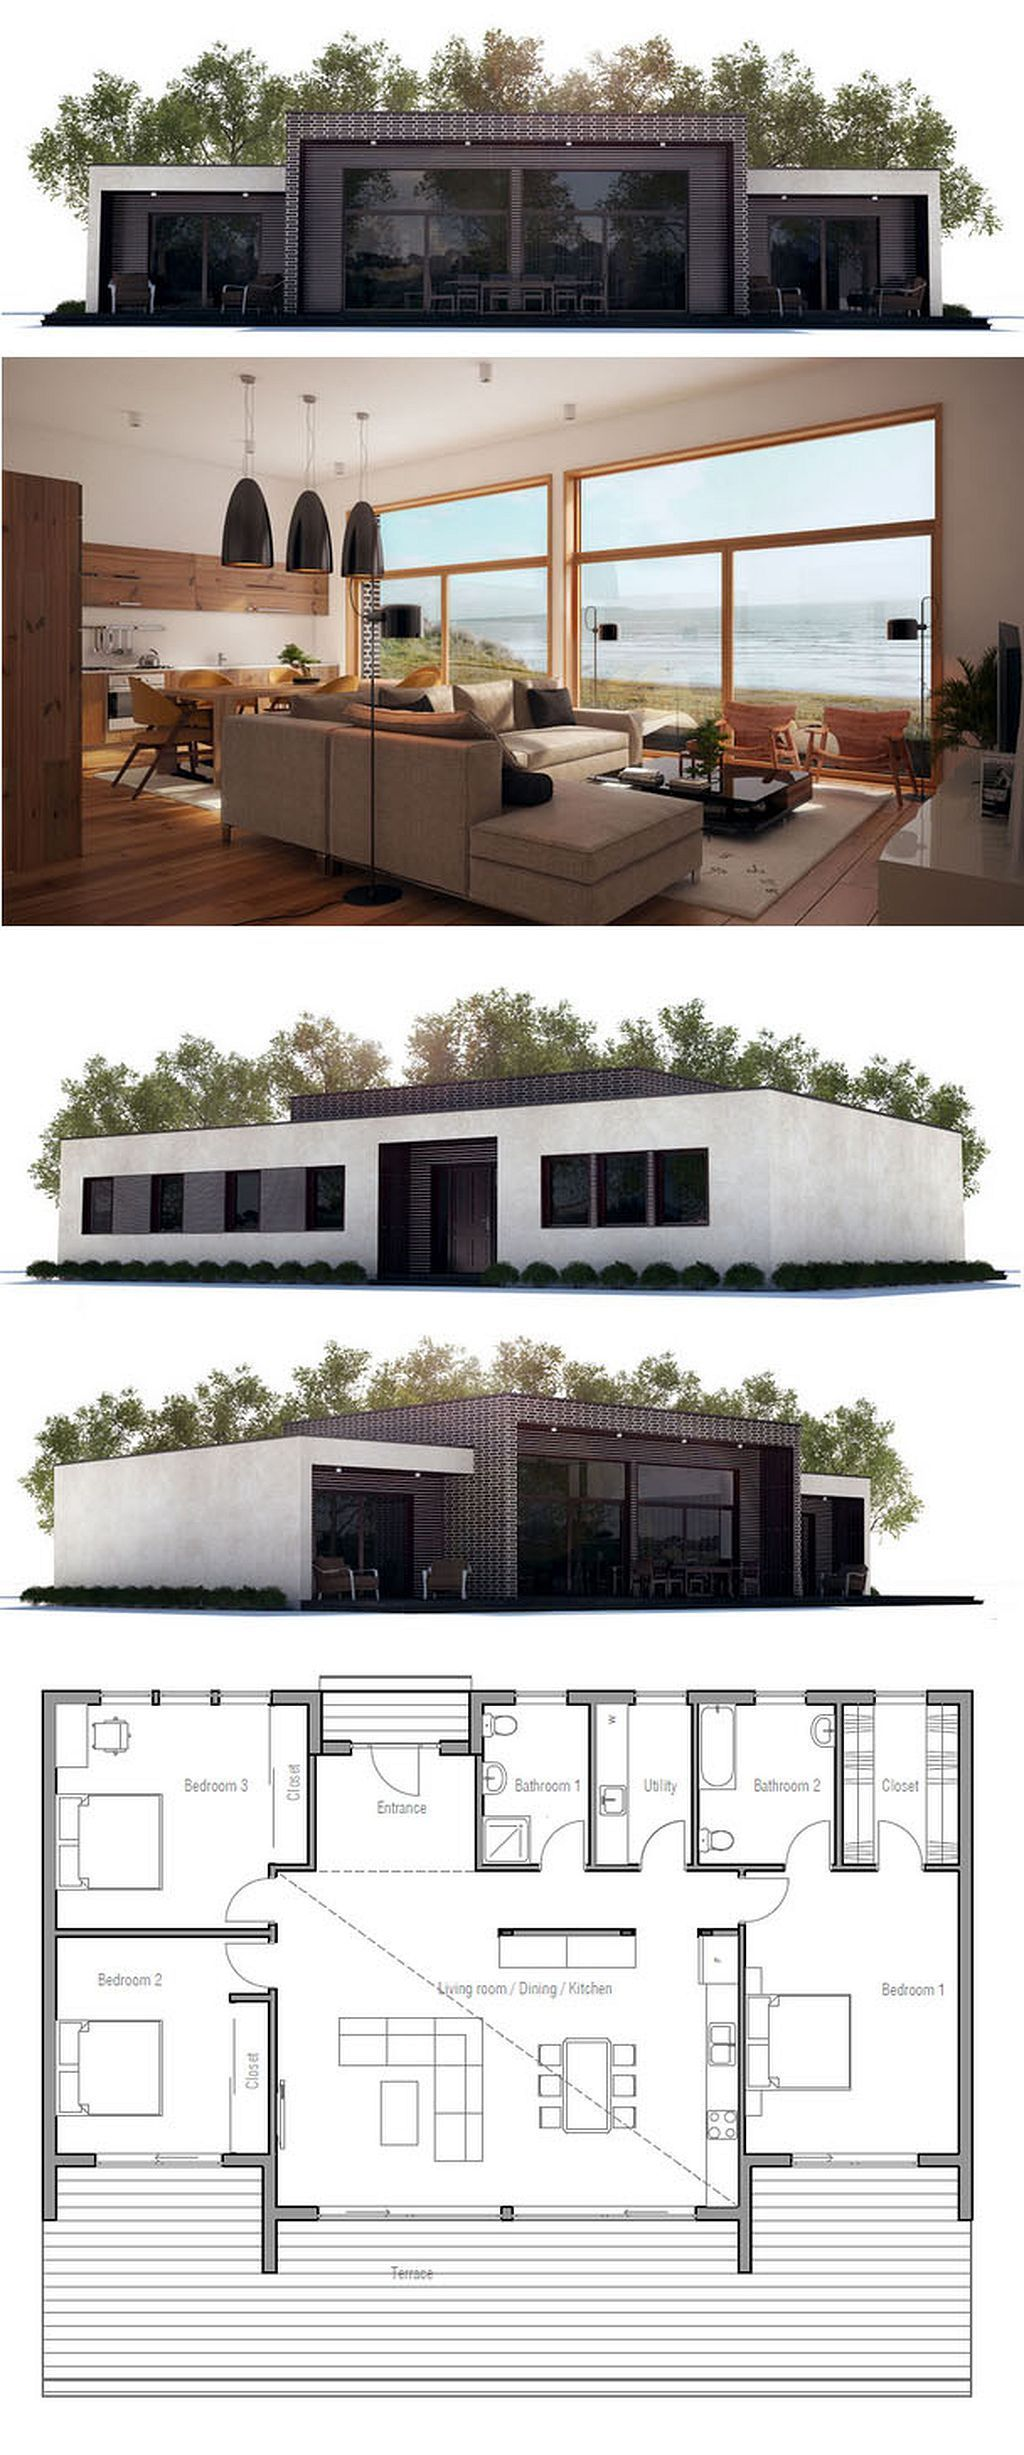 Container Homes Design Plans Ideas 87 shipping container house plans ideas | shipping container house